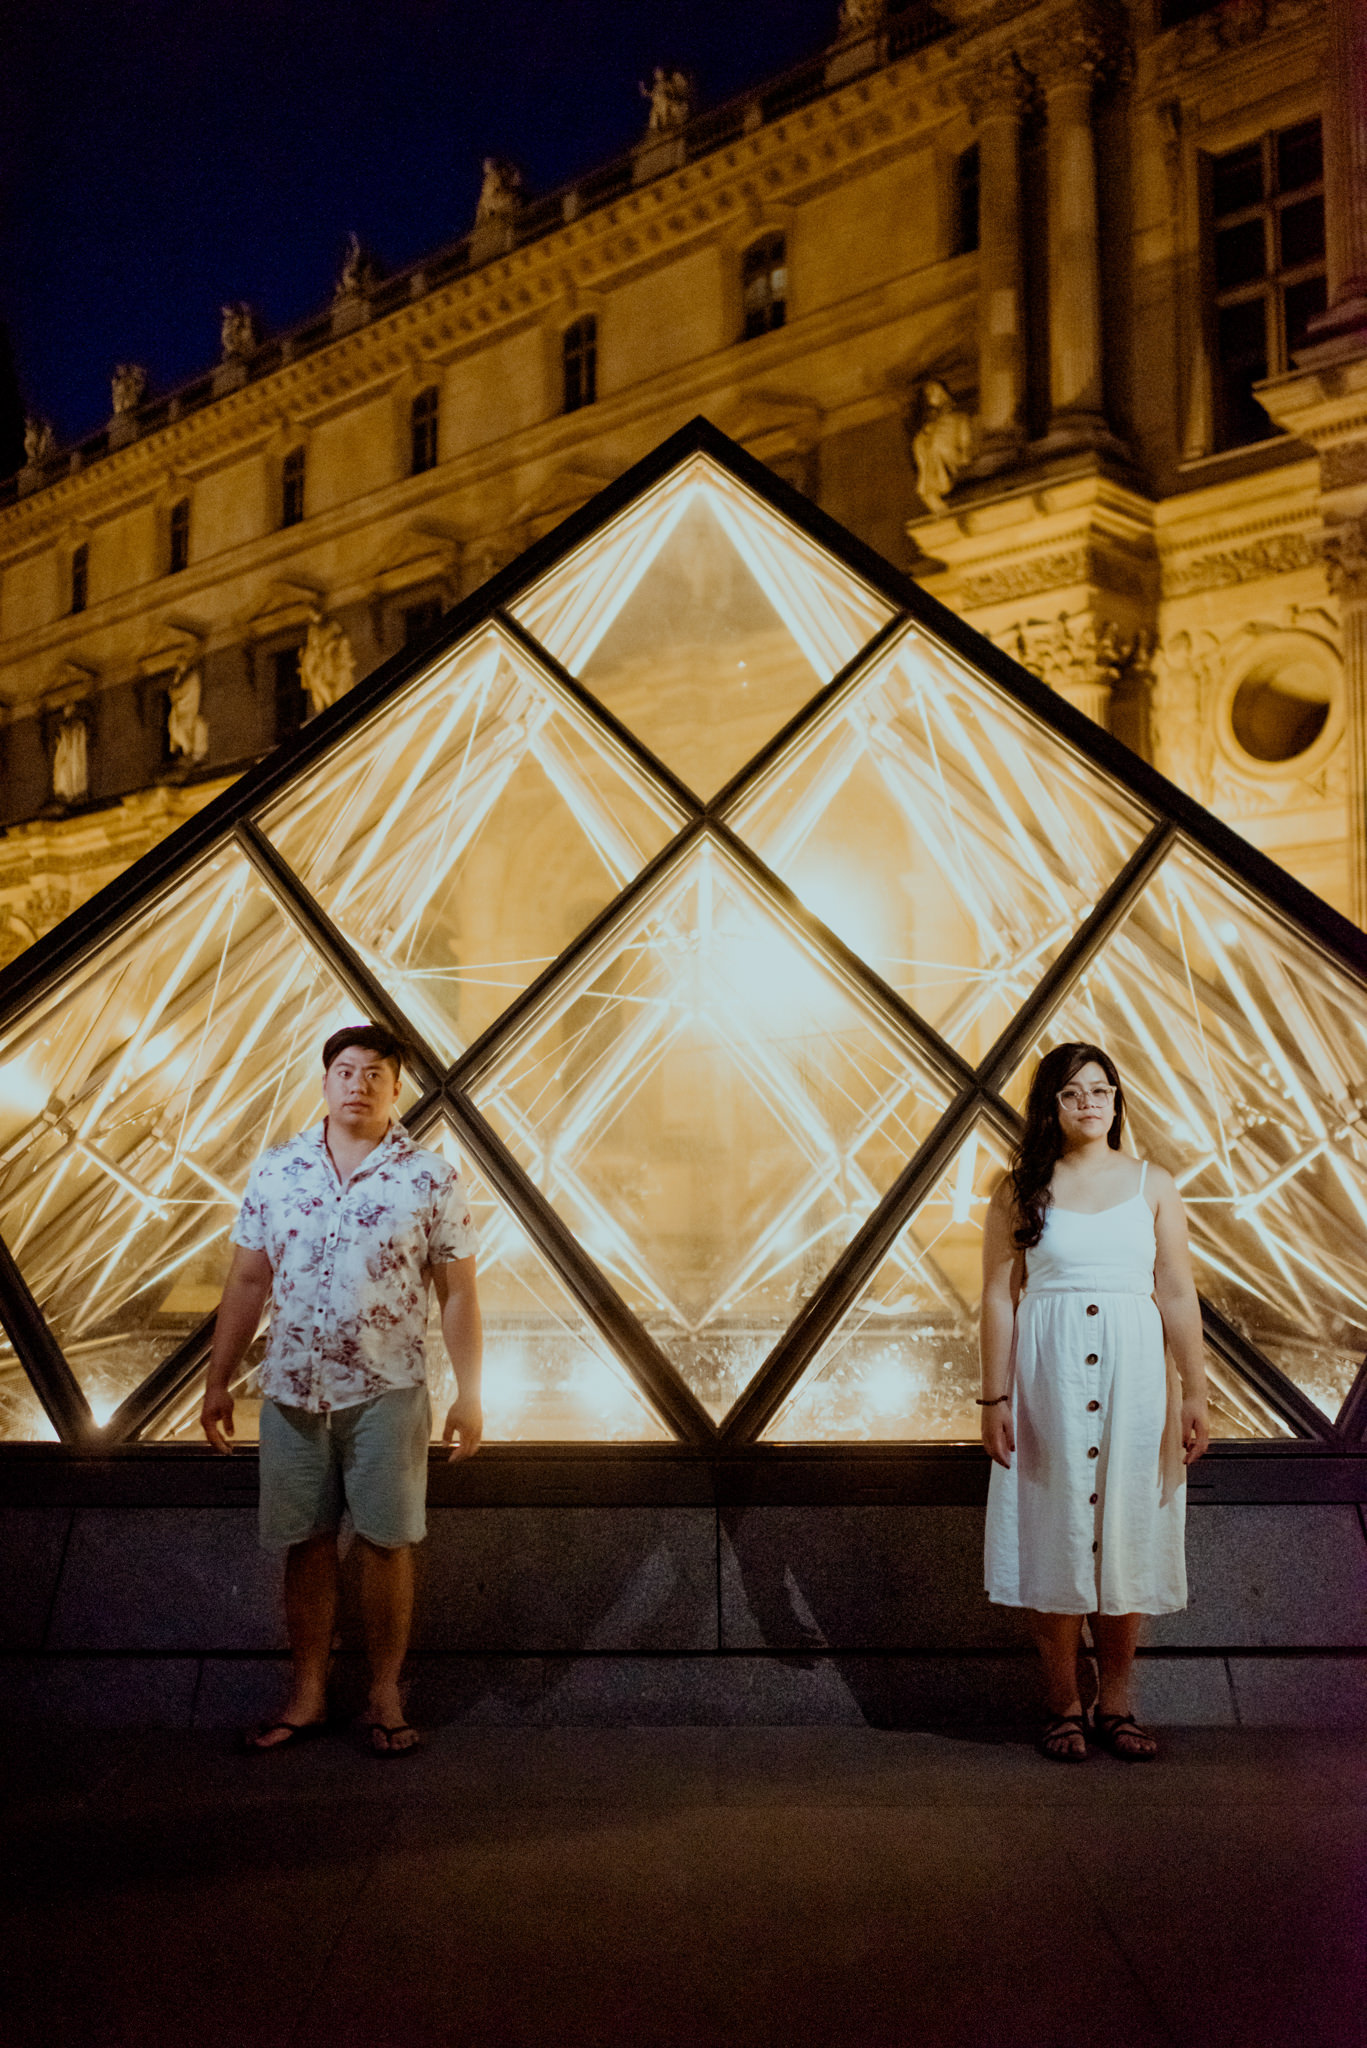 Asian man and woman stand in front of the Louvre Pyramids.